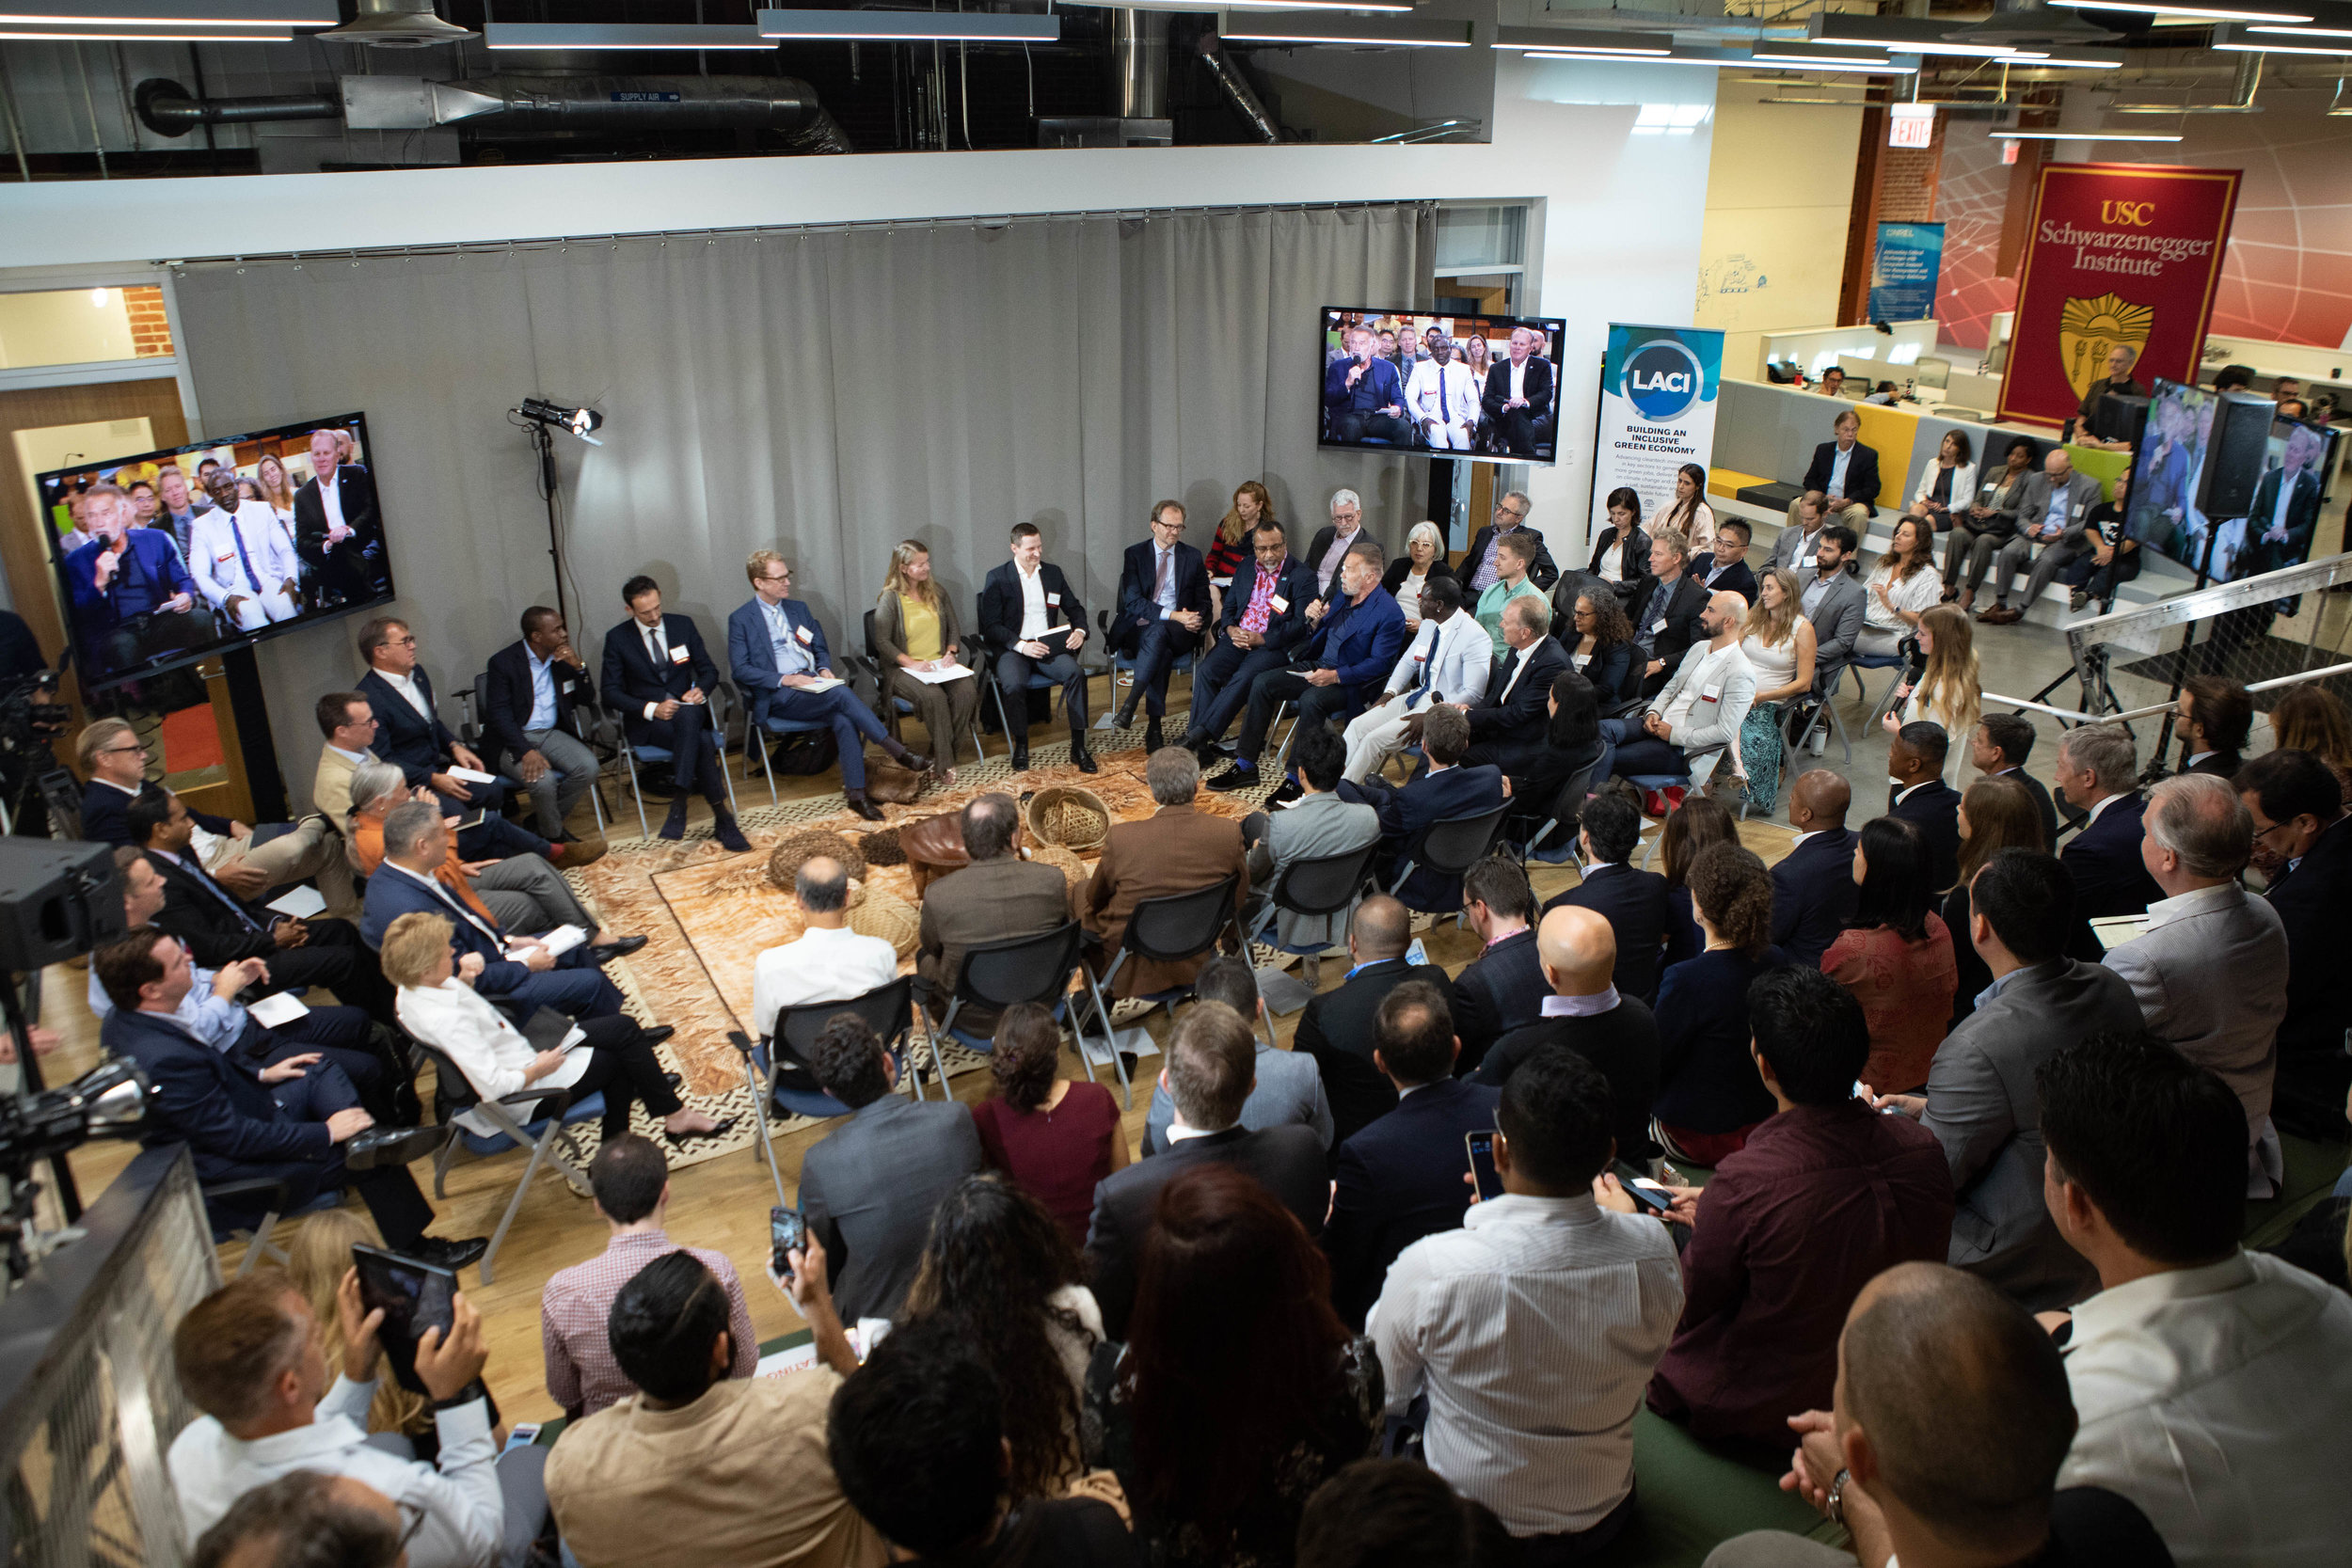 Former California Governor Arnold Schwarzenegger, with the support of Fijian Prime Minister and COP23 President Frank Bainimarama, convened a Talanoa Dialogue at the Los Angeles Cleantech Incubator to explore opportunities and best practices for climate-smart investments at the city and sub-national level that could terminate the root causes of climate change.